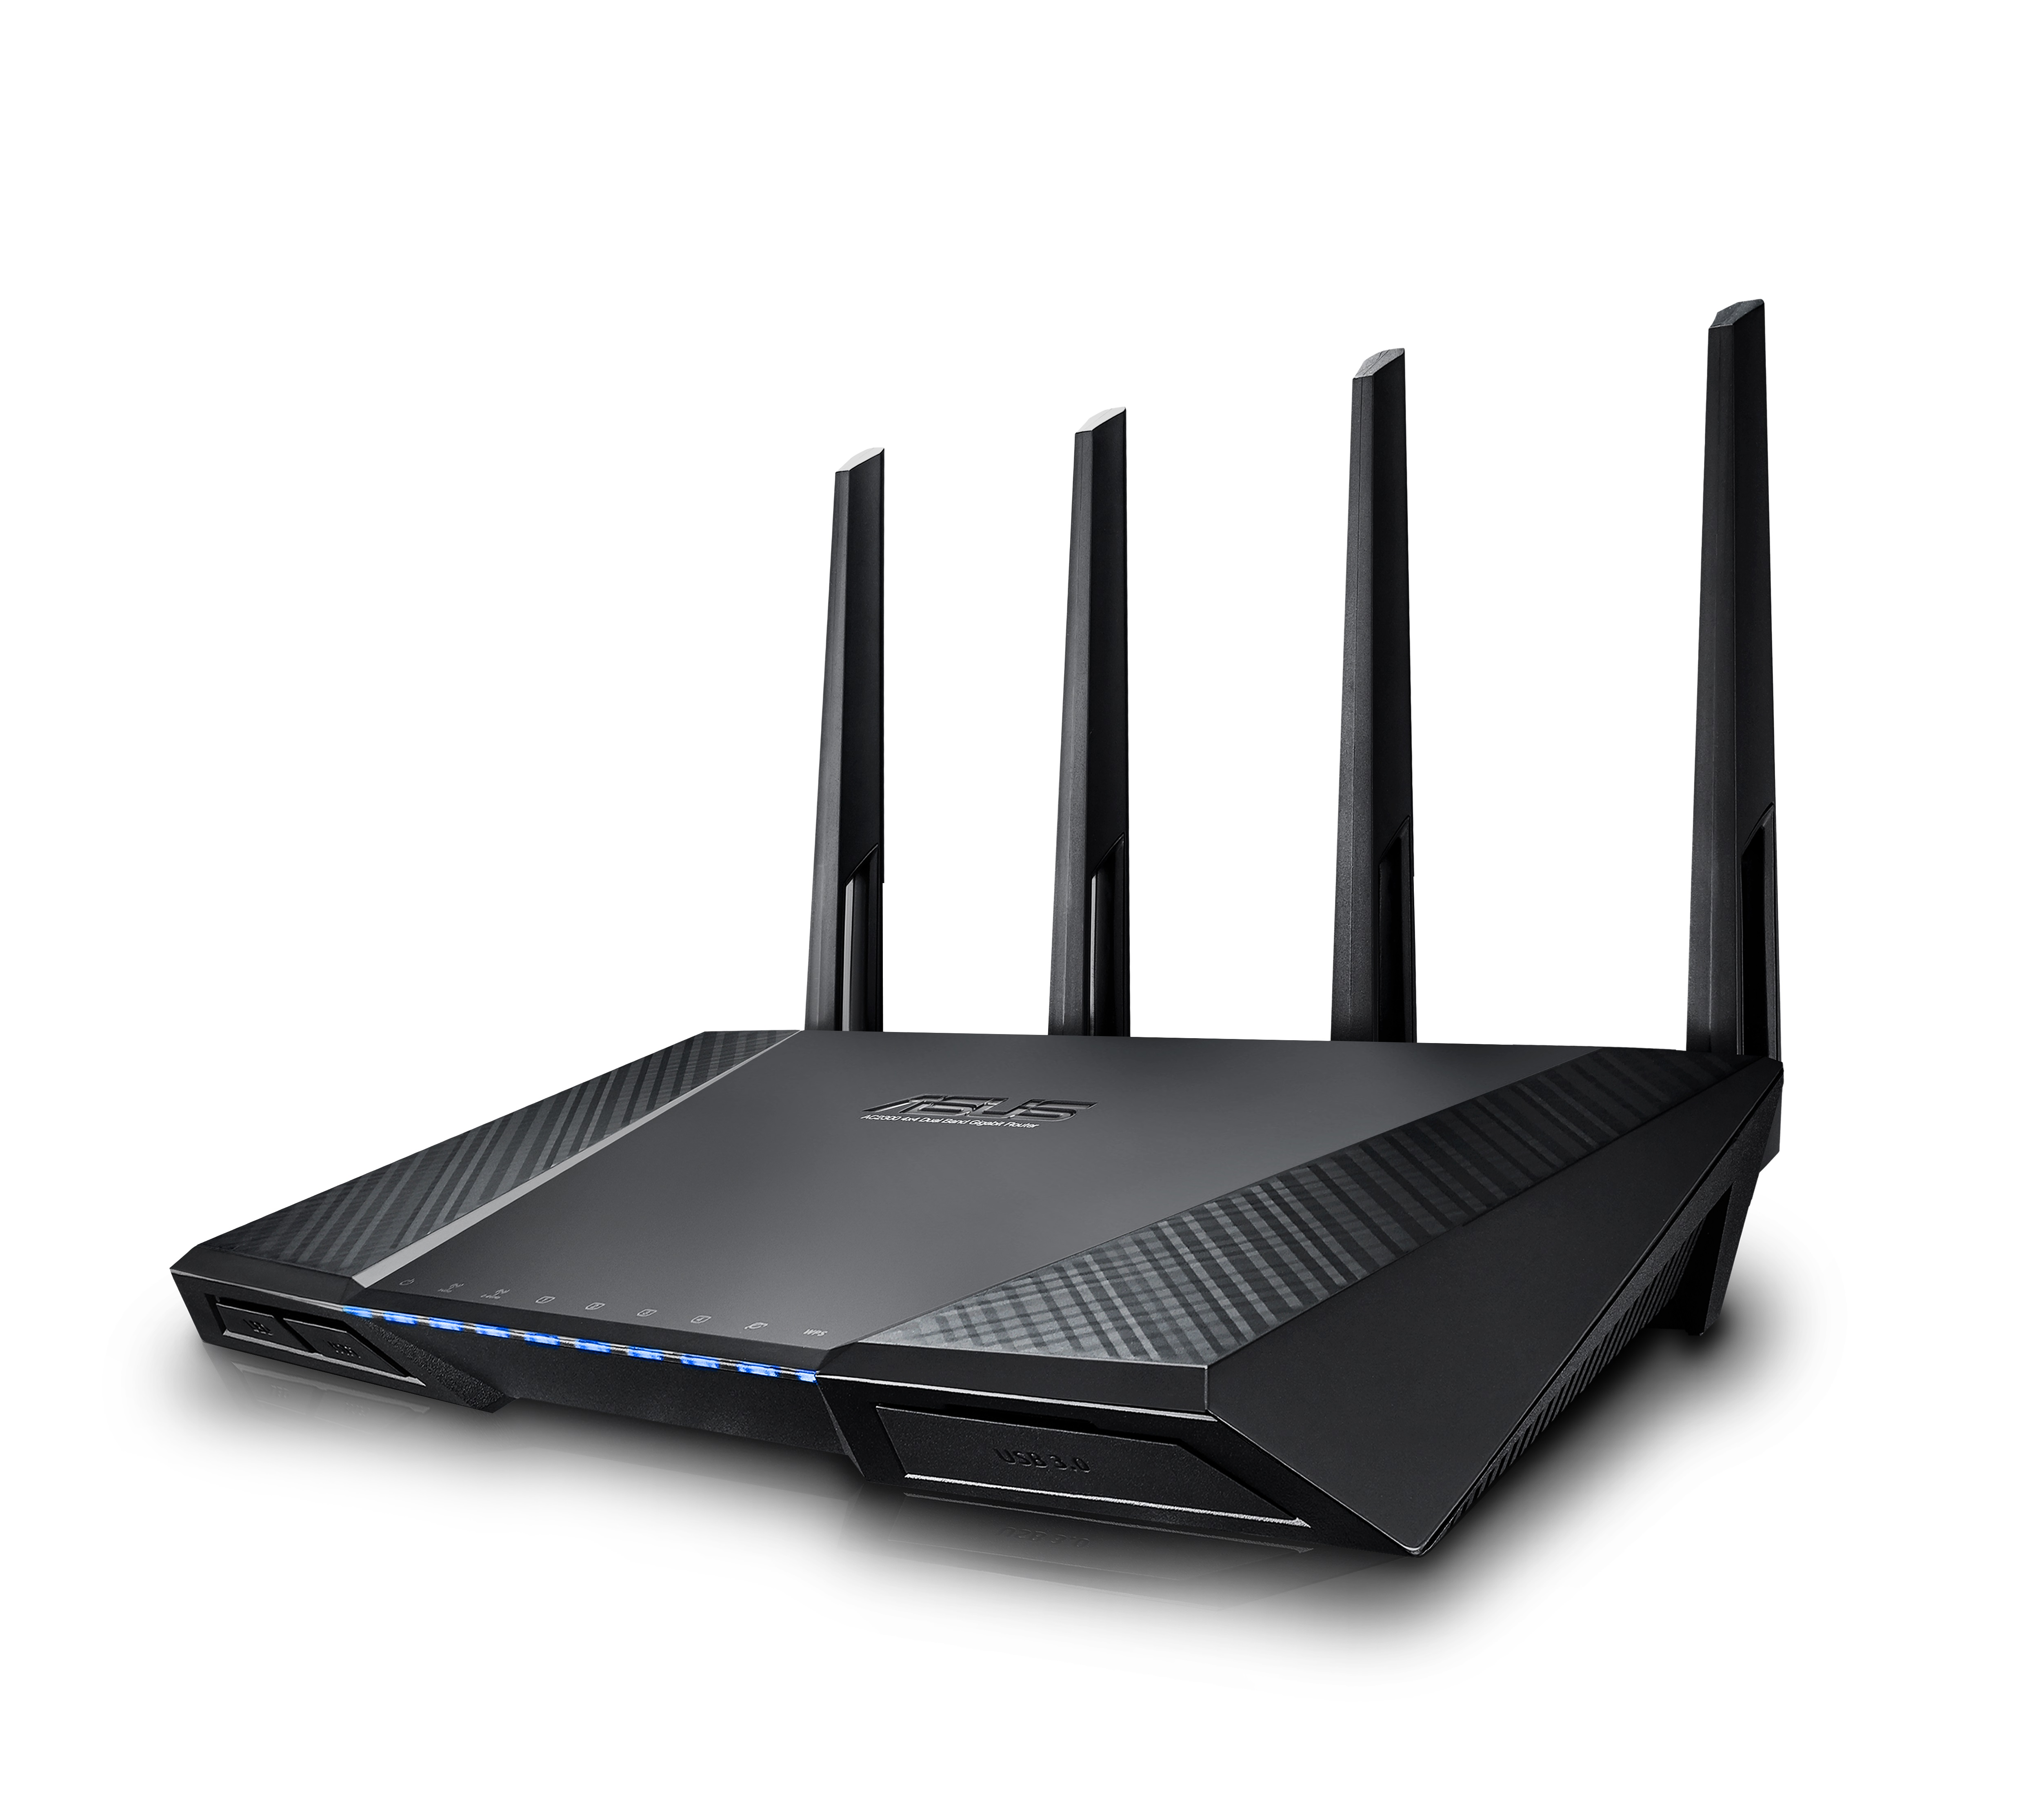 ASUS RT-AC87U & RT-AC87R - The Best 802.11AC Router - Edge Up